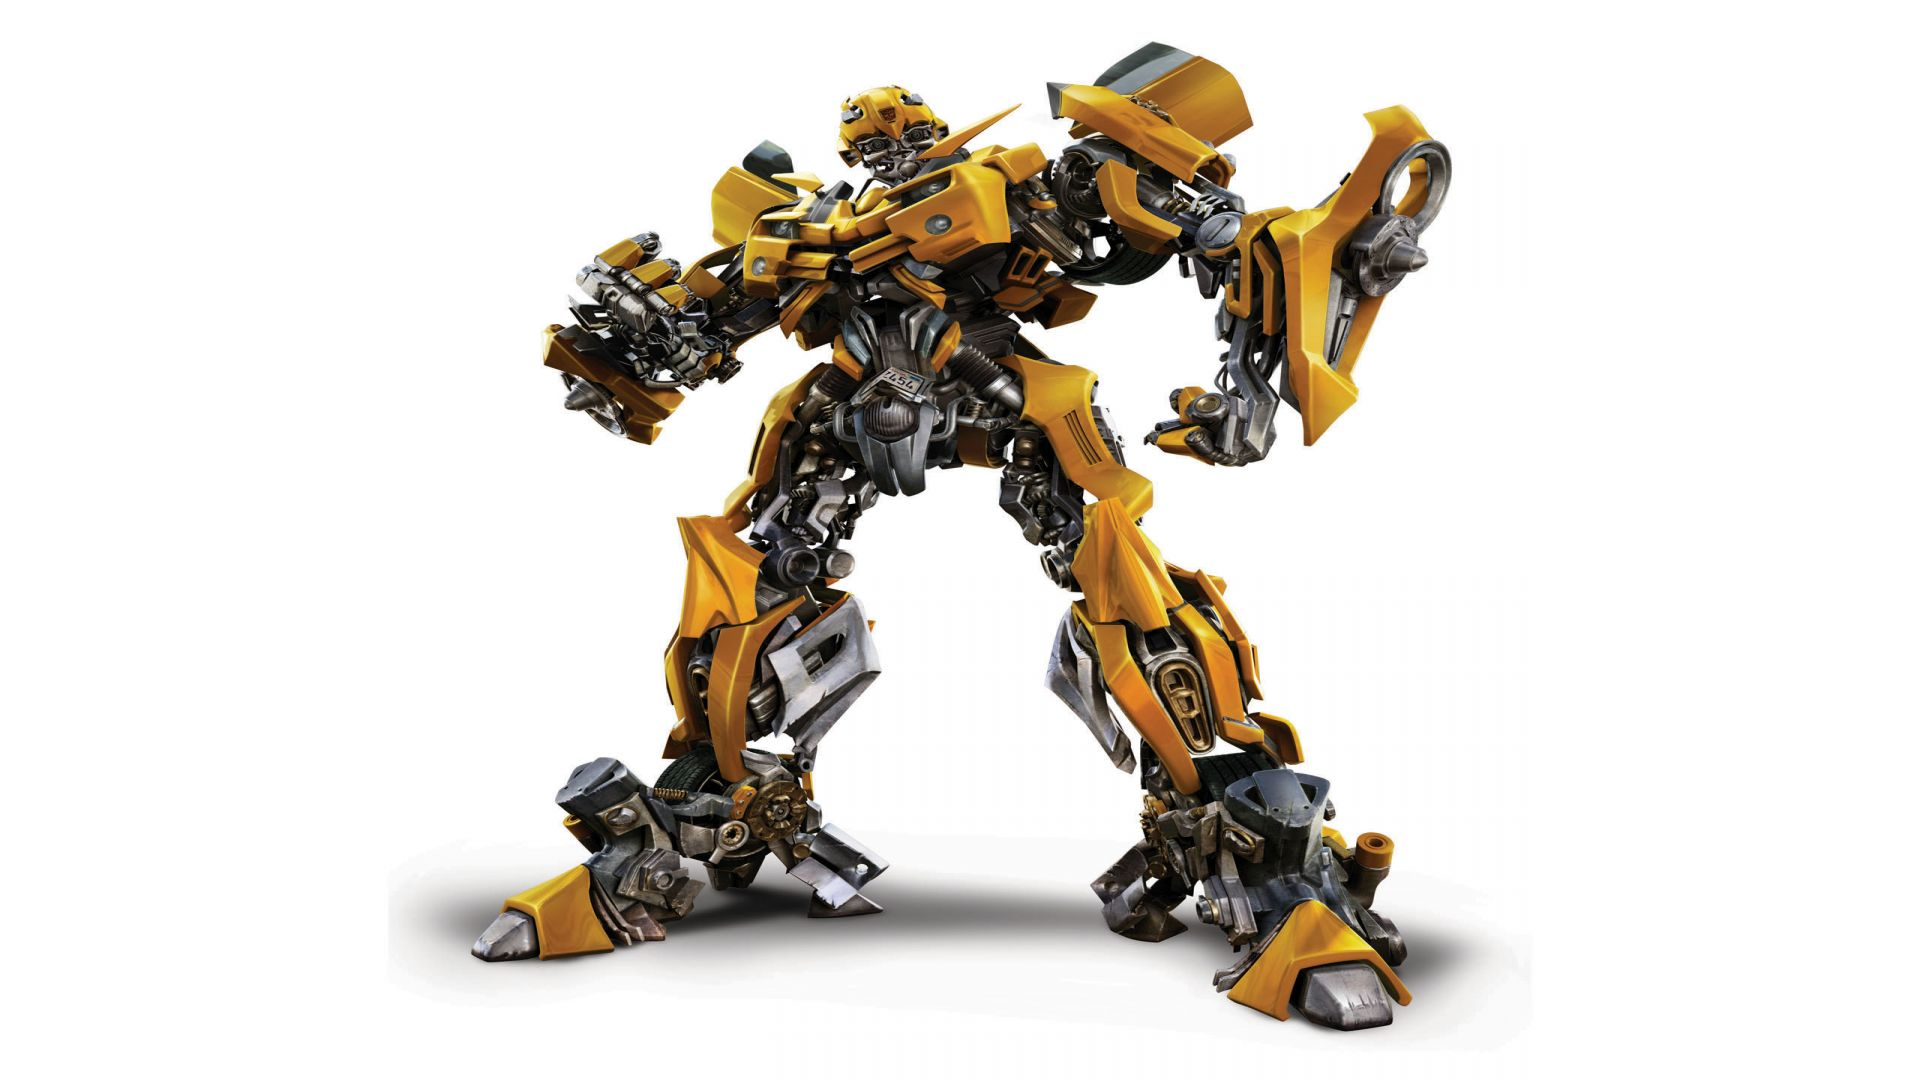 Happy Birthday 1080p Hd Wallpapers 45 Hd Transformer Wallpapers Backgrounds For Free Download